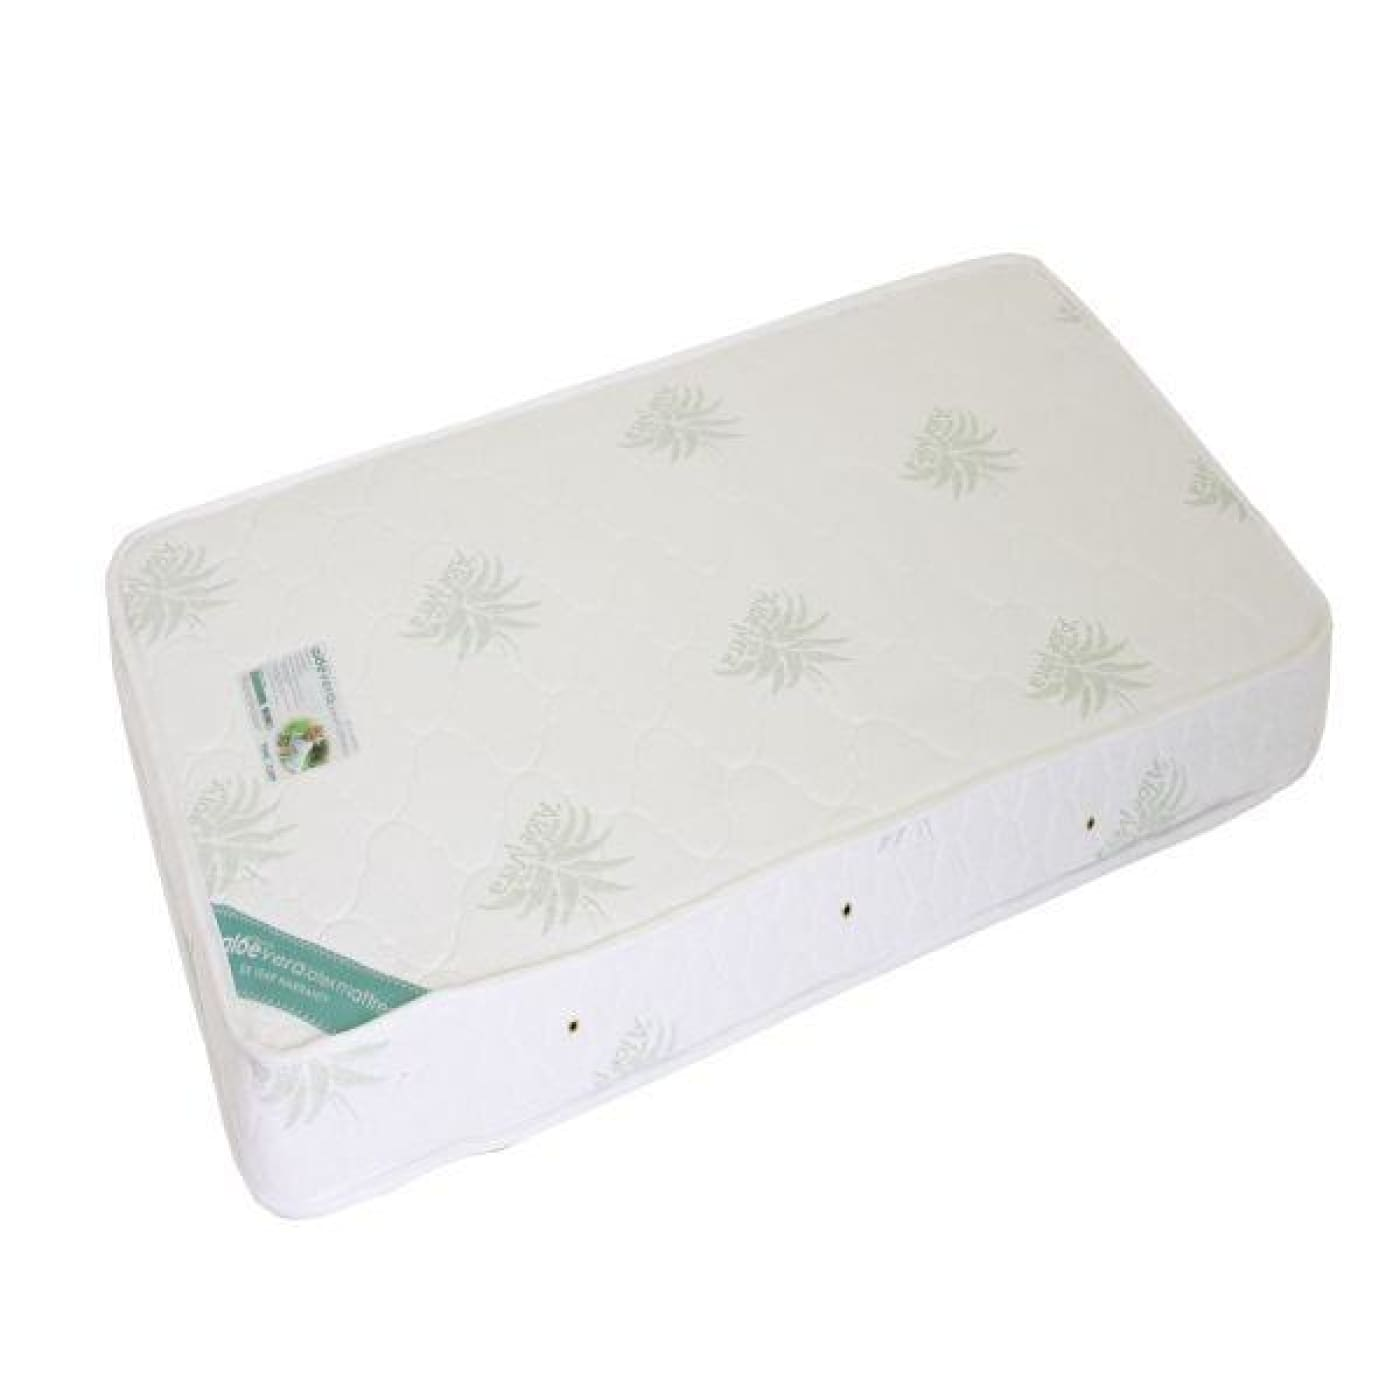 Love N Care Aloe Vera Organic Latex Cot Mattress 130X69CM - 130x69cm - NURSERY & BEDTIME - COT MATTRESSES